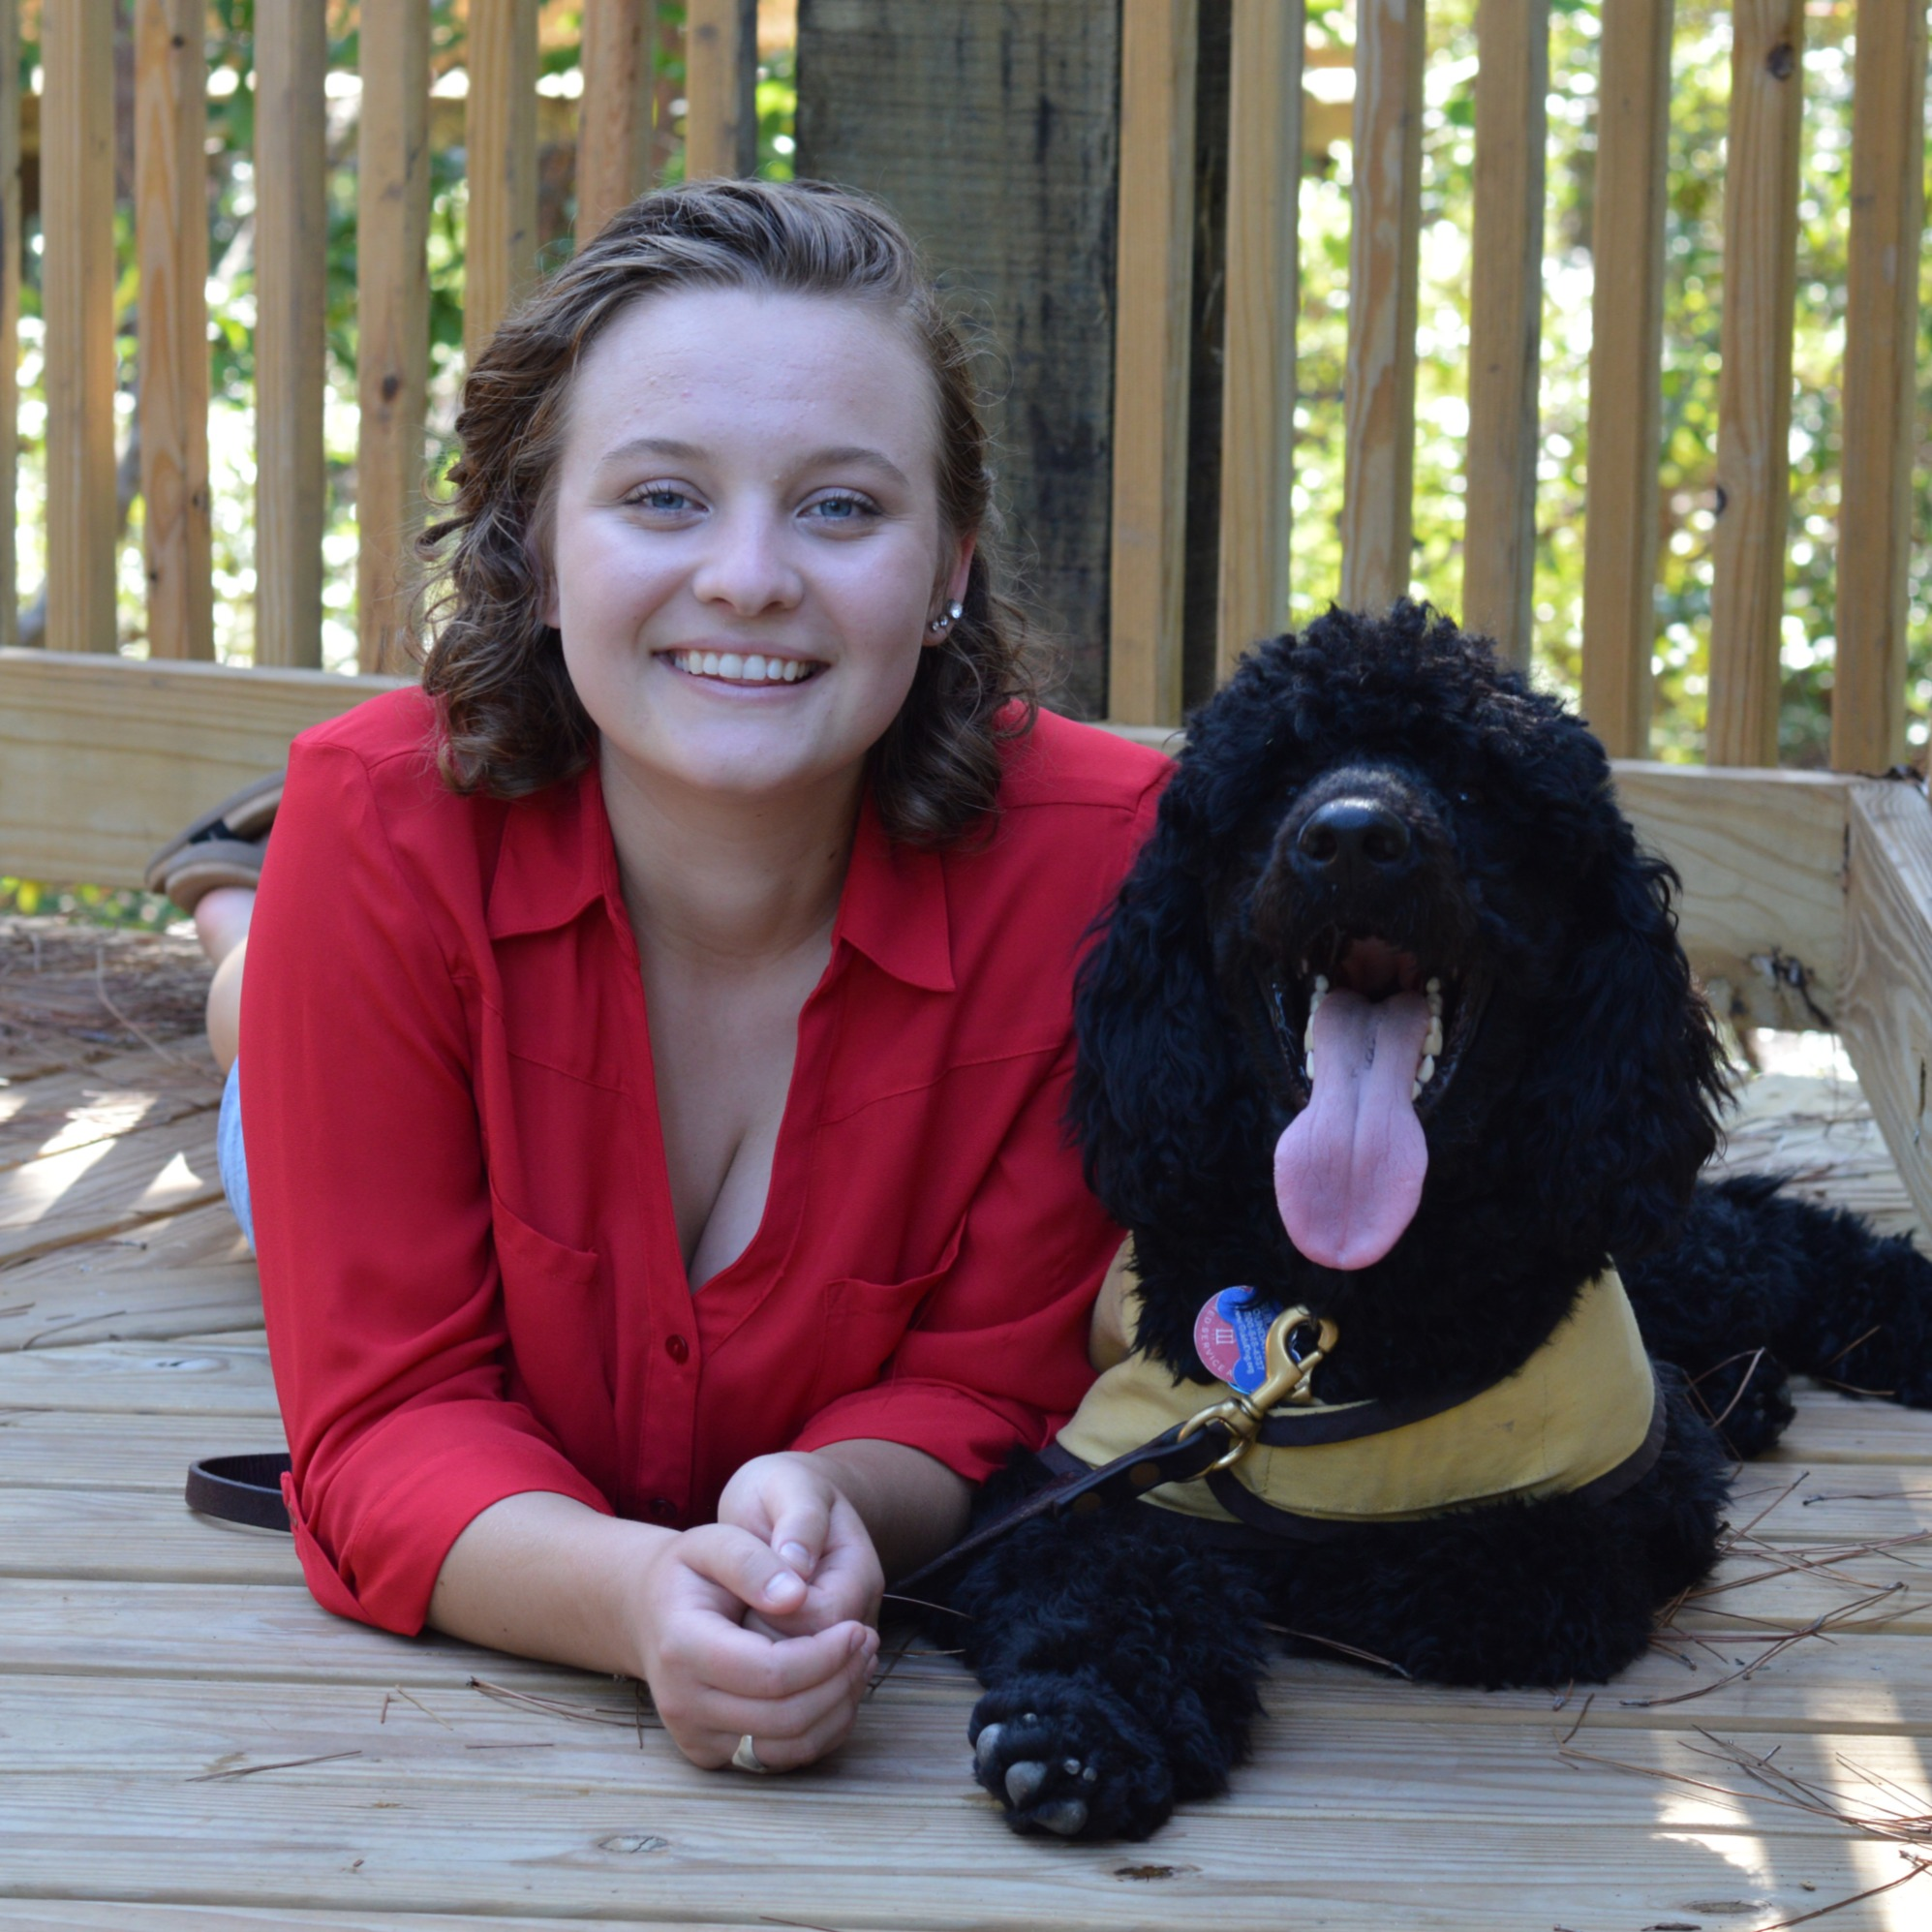 Julia lays on a deck next to a black standard poodle in a yellow vest.